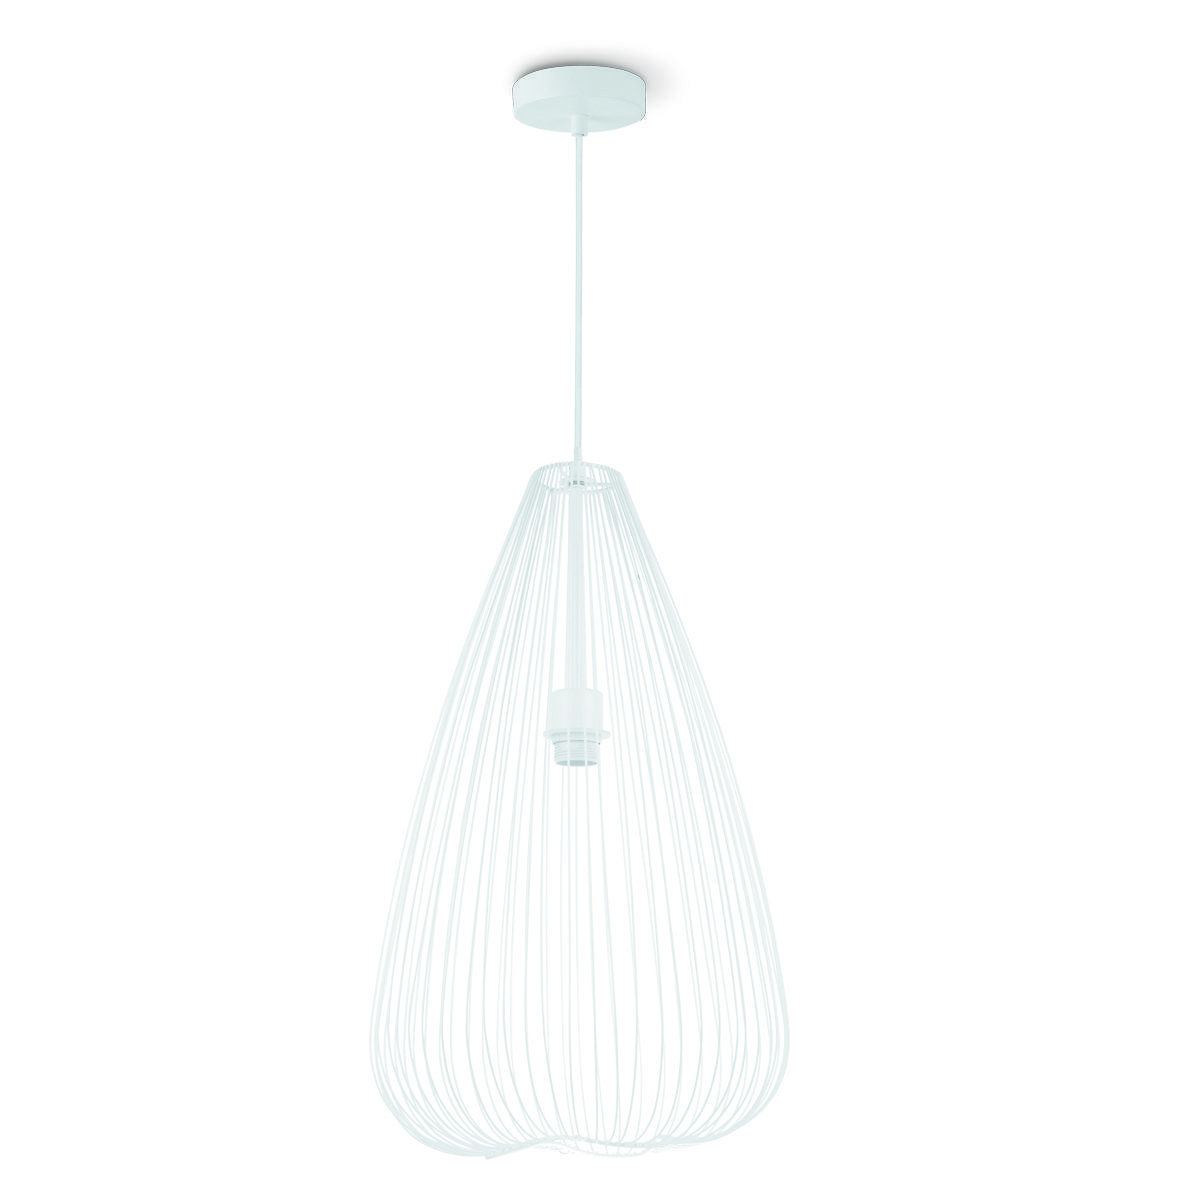 Home sweet home hanglamp Cage Ø 35 cm - wit